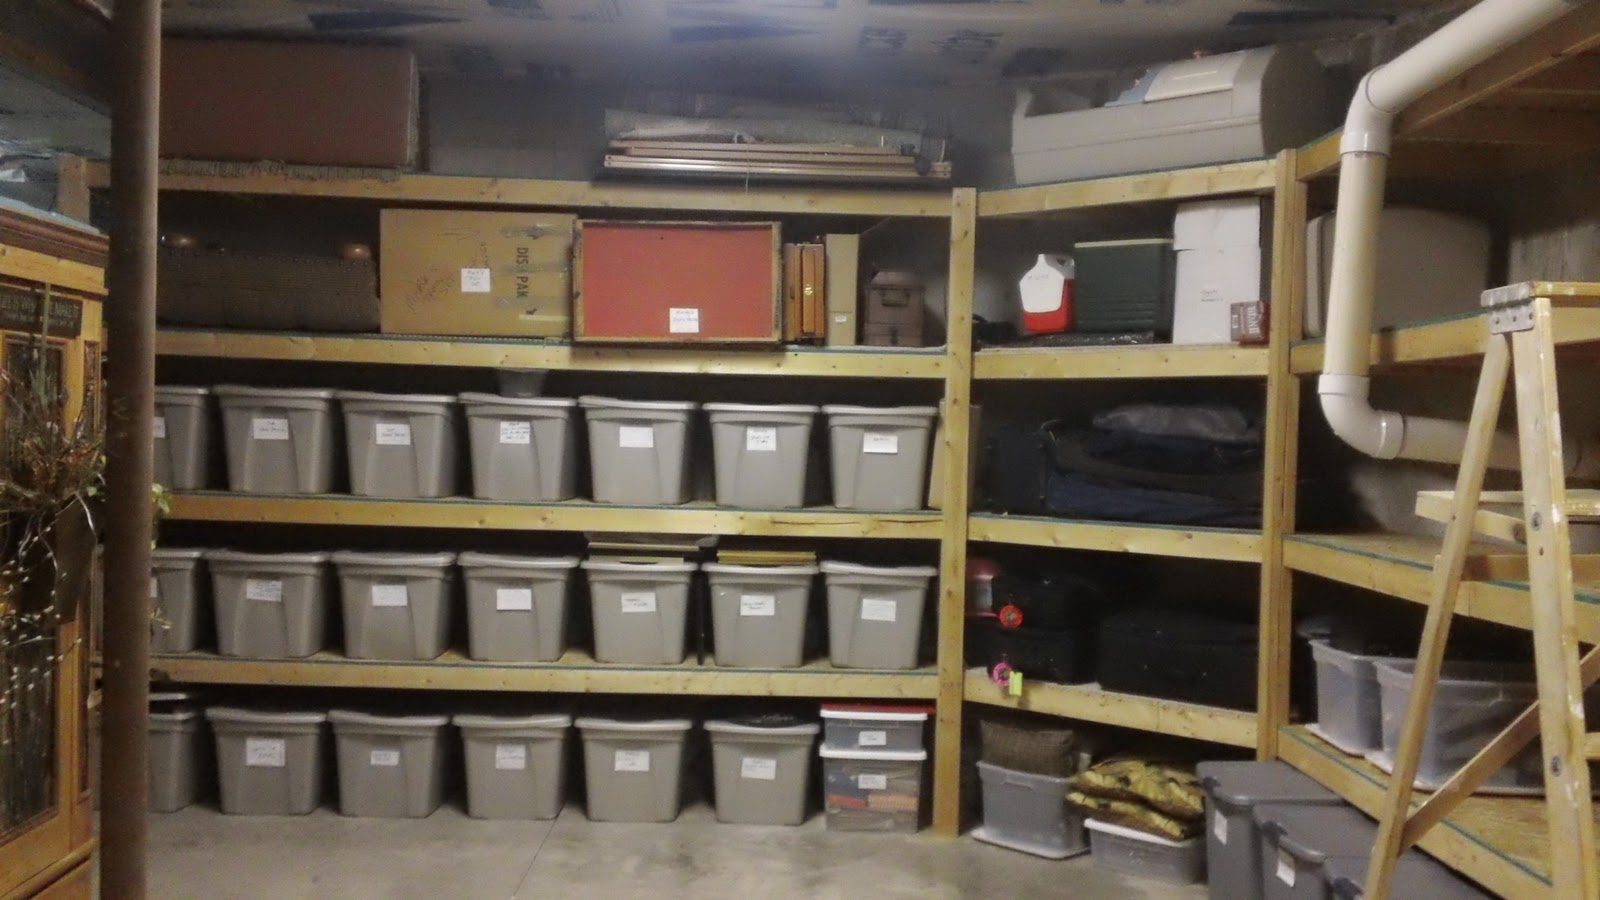 creepy basement bedroom.  Creative Ideas For Basement Storage In Trenton NJ